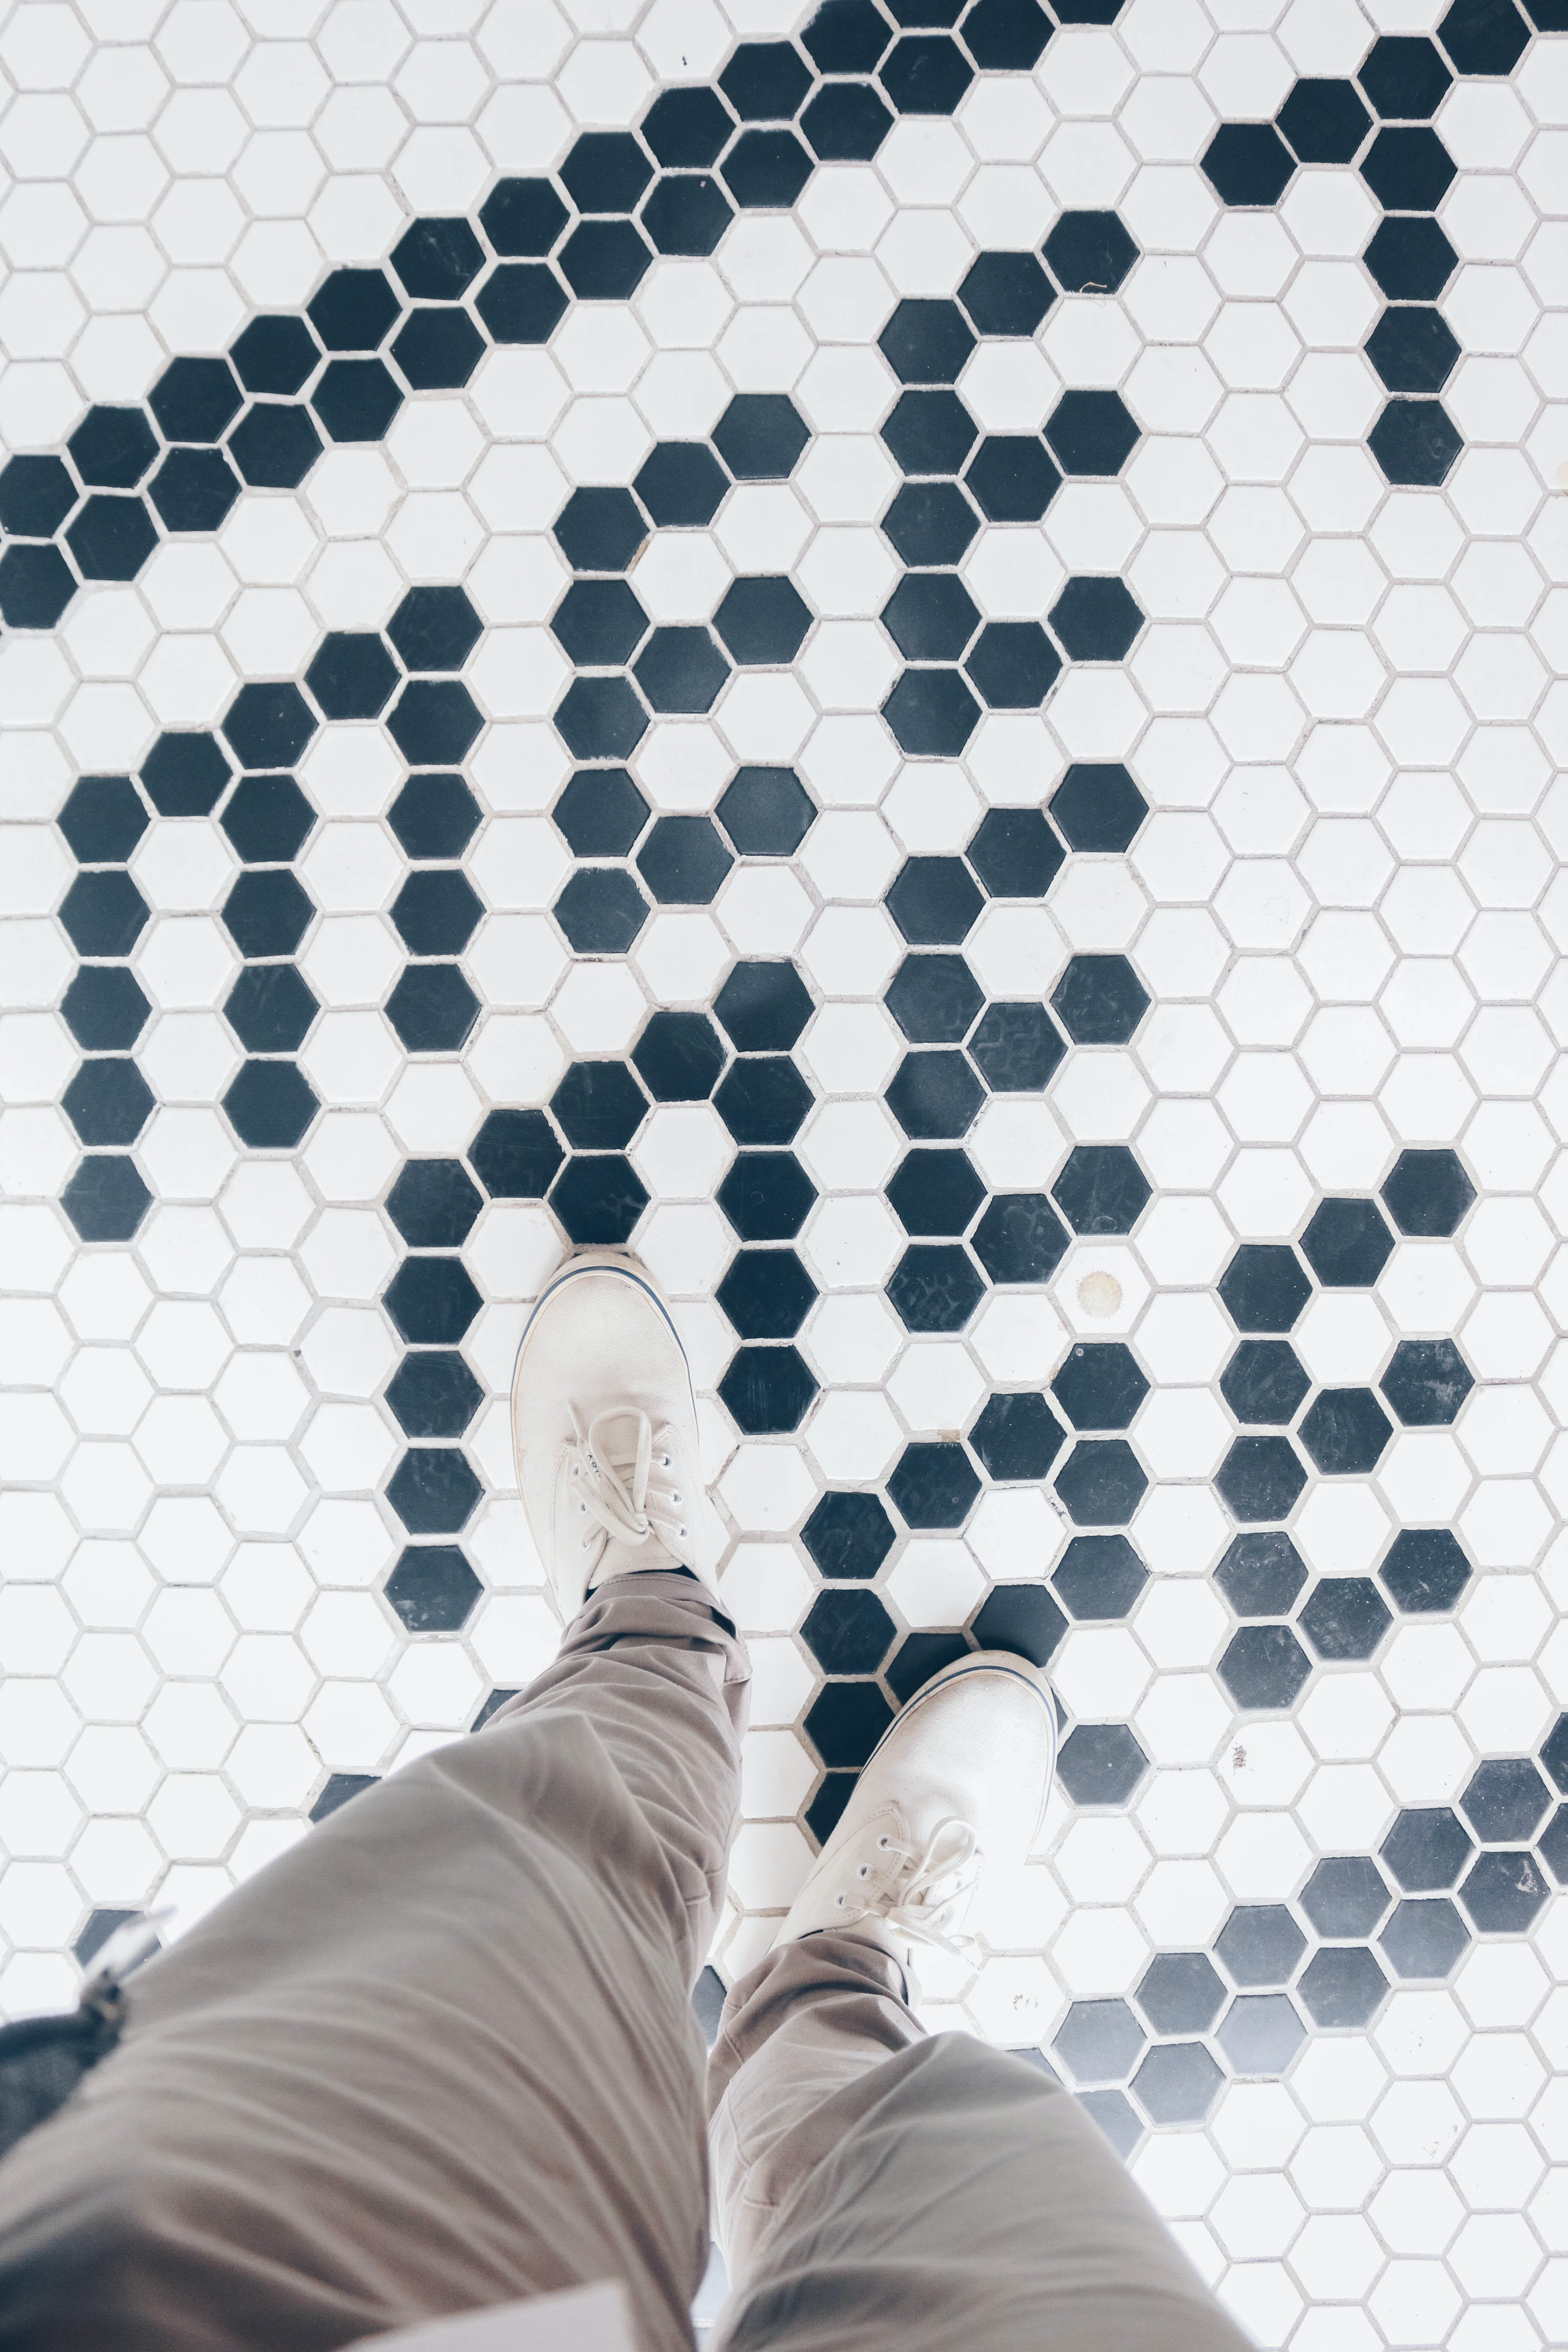 Free stock photo of shoes, white, above, walk